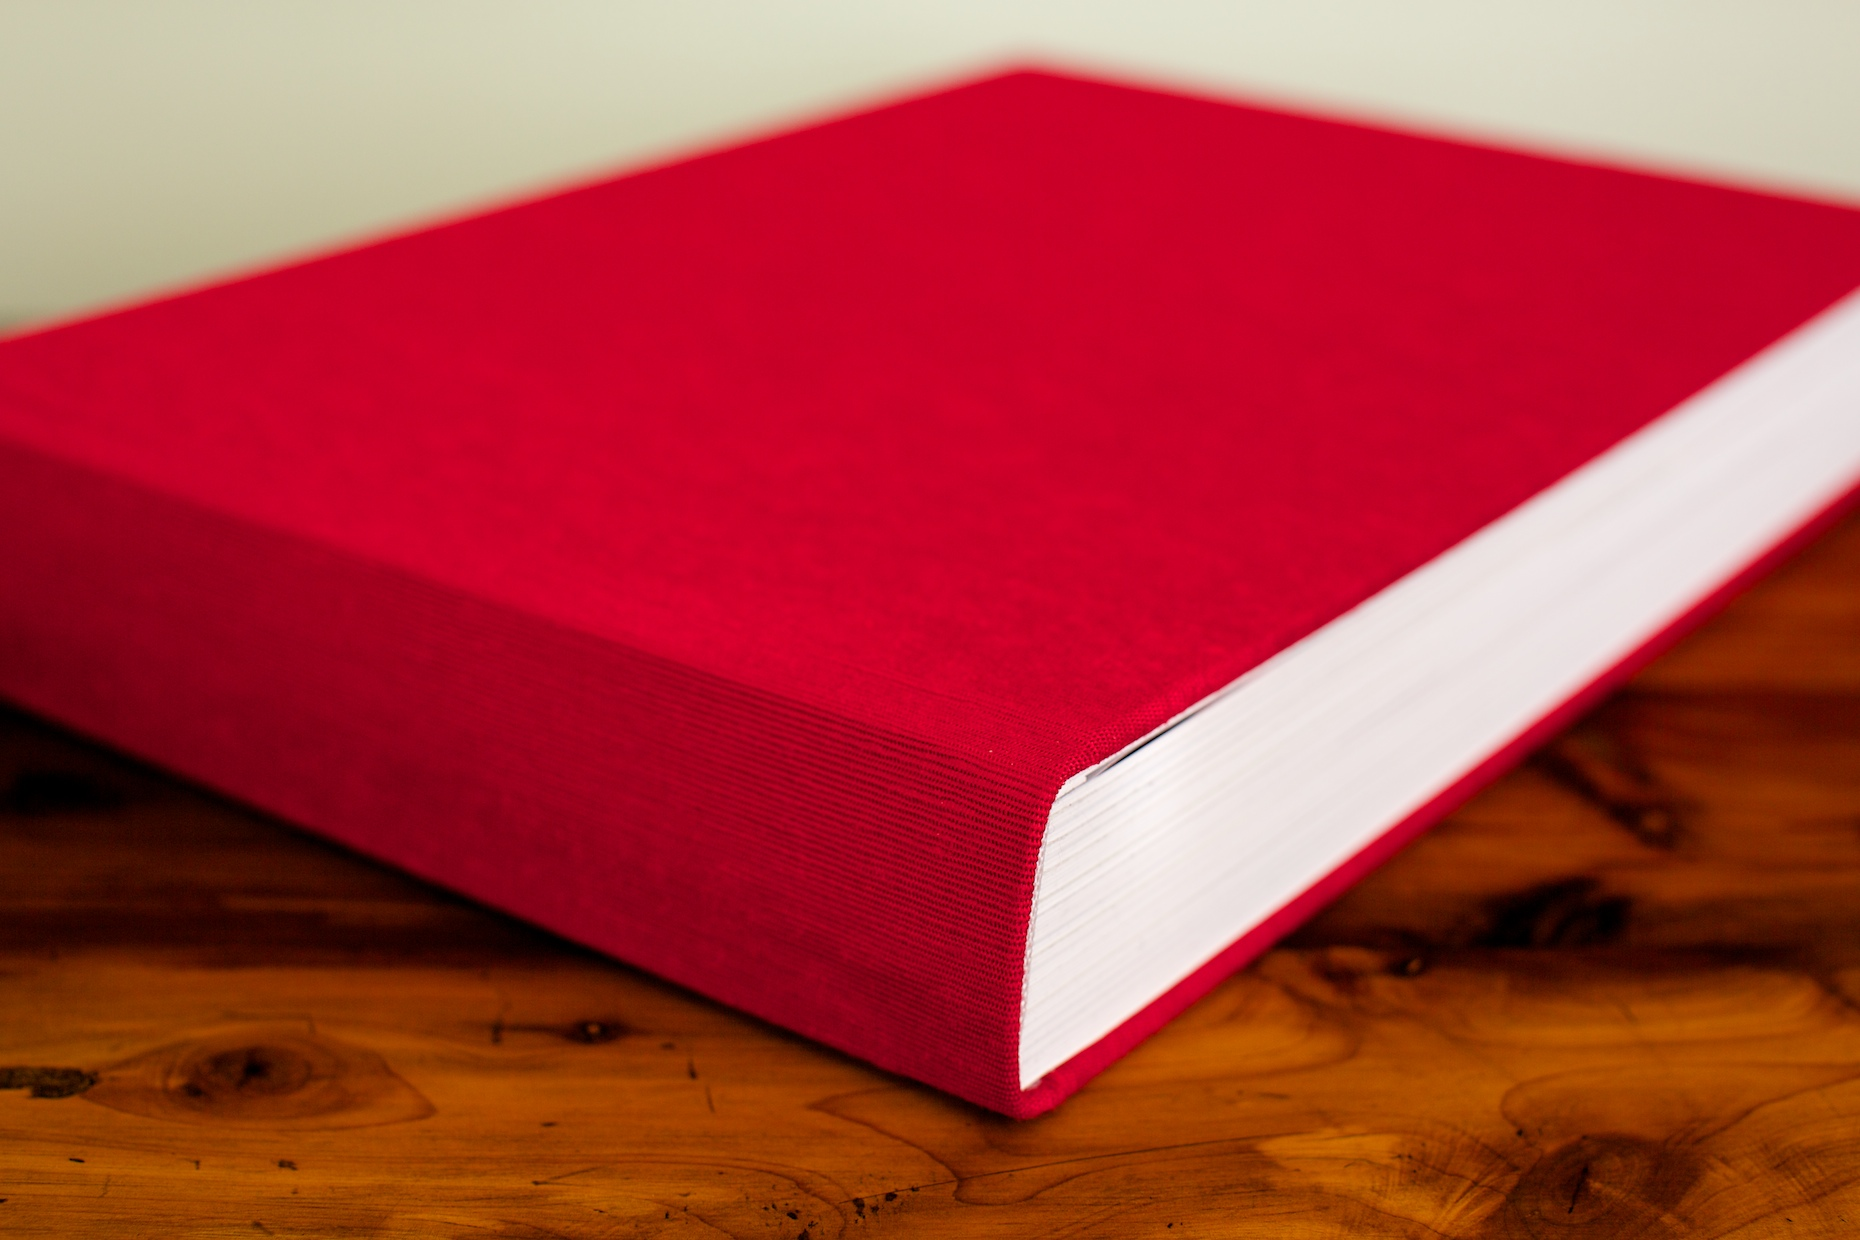 14x10 Queensberry Flushmount Album | Red Silk Cover